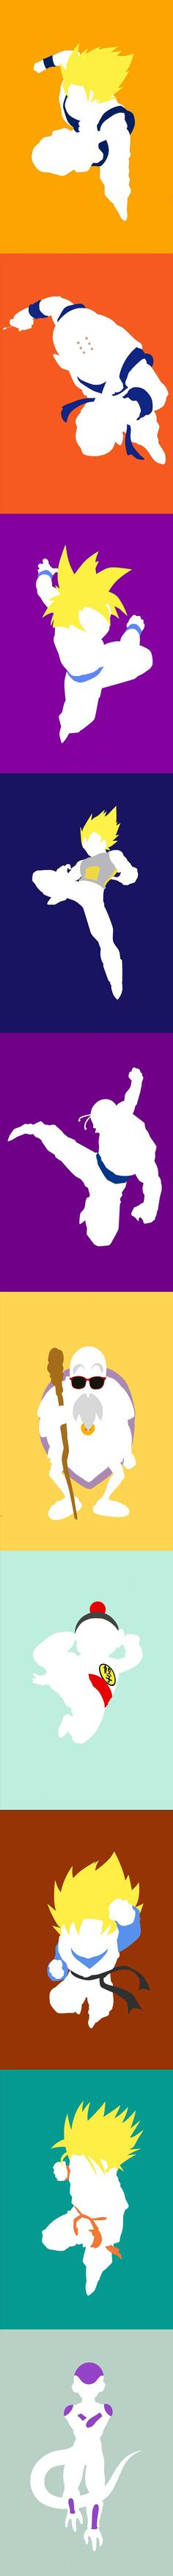 Dragon Ball Z Minimalist Posterswonder if i can print theses and modge podge them on wood for a growth chart